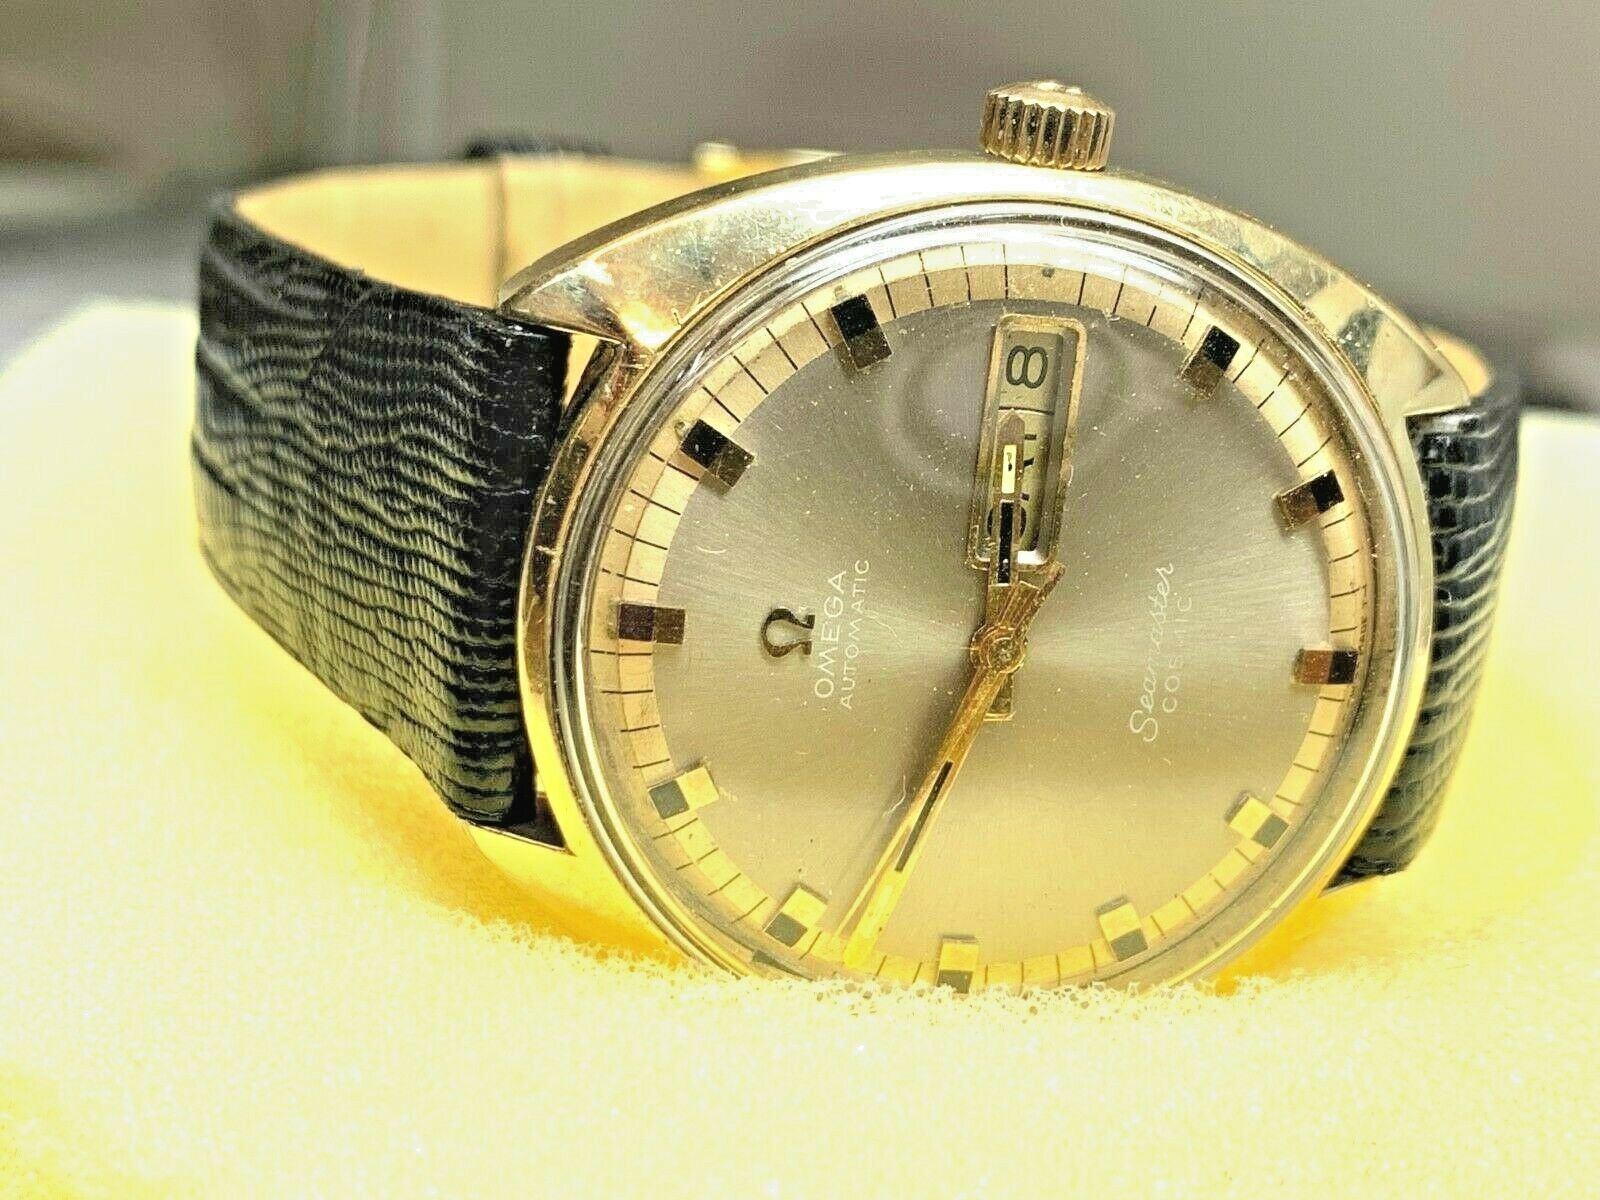 Omega Seamaster Cosmic 752 Vintage Day / Date Automatic Swiss Watch image 10